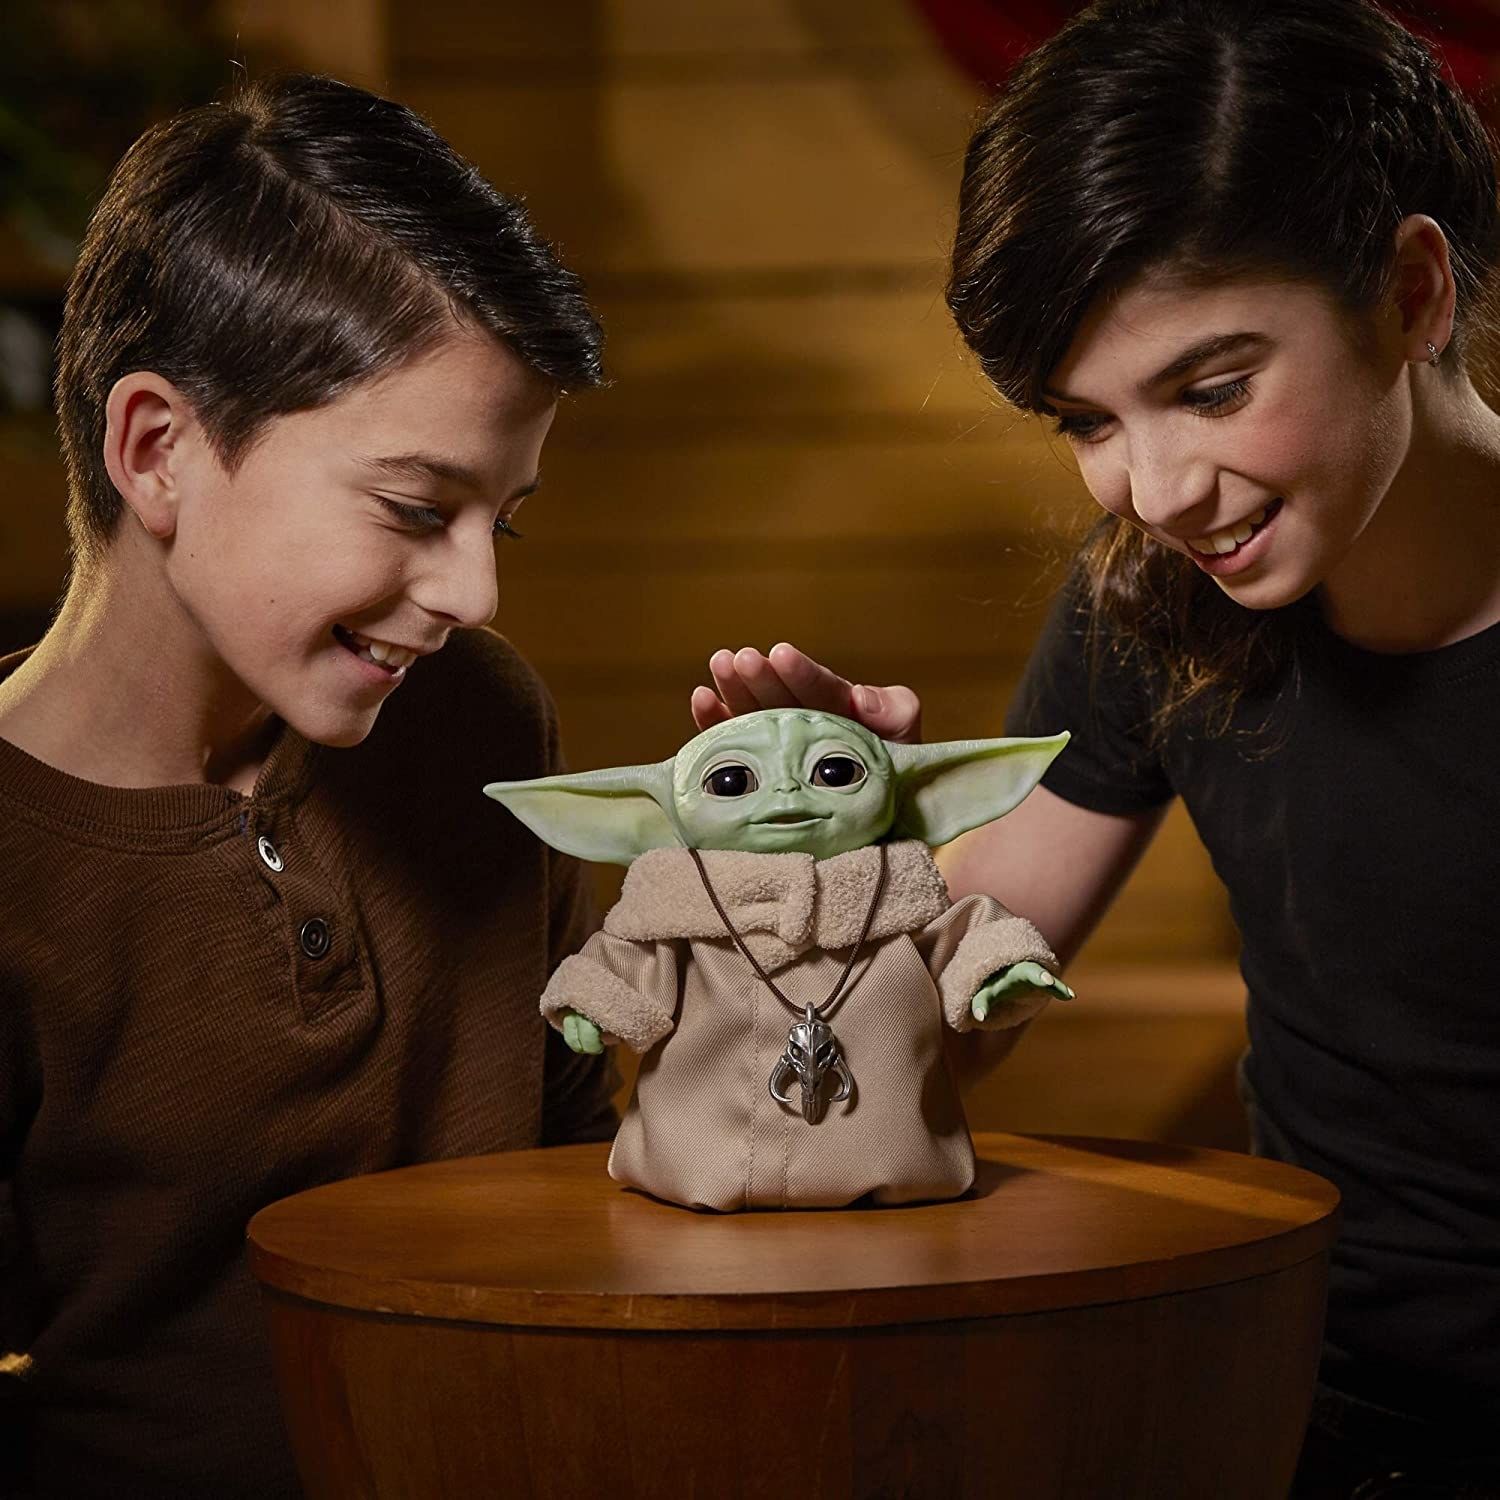 Two children playing with the interactive baby yoda